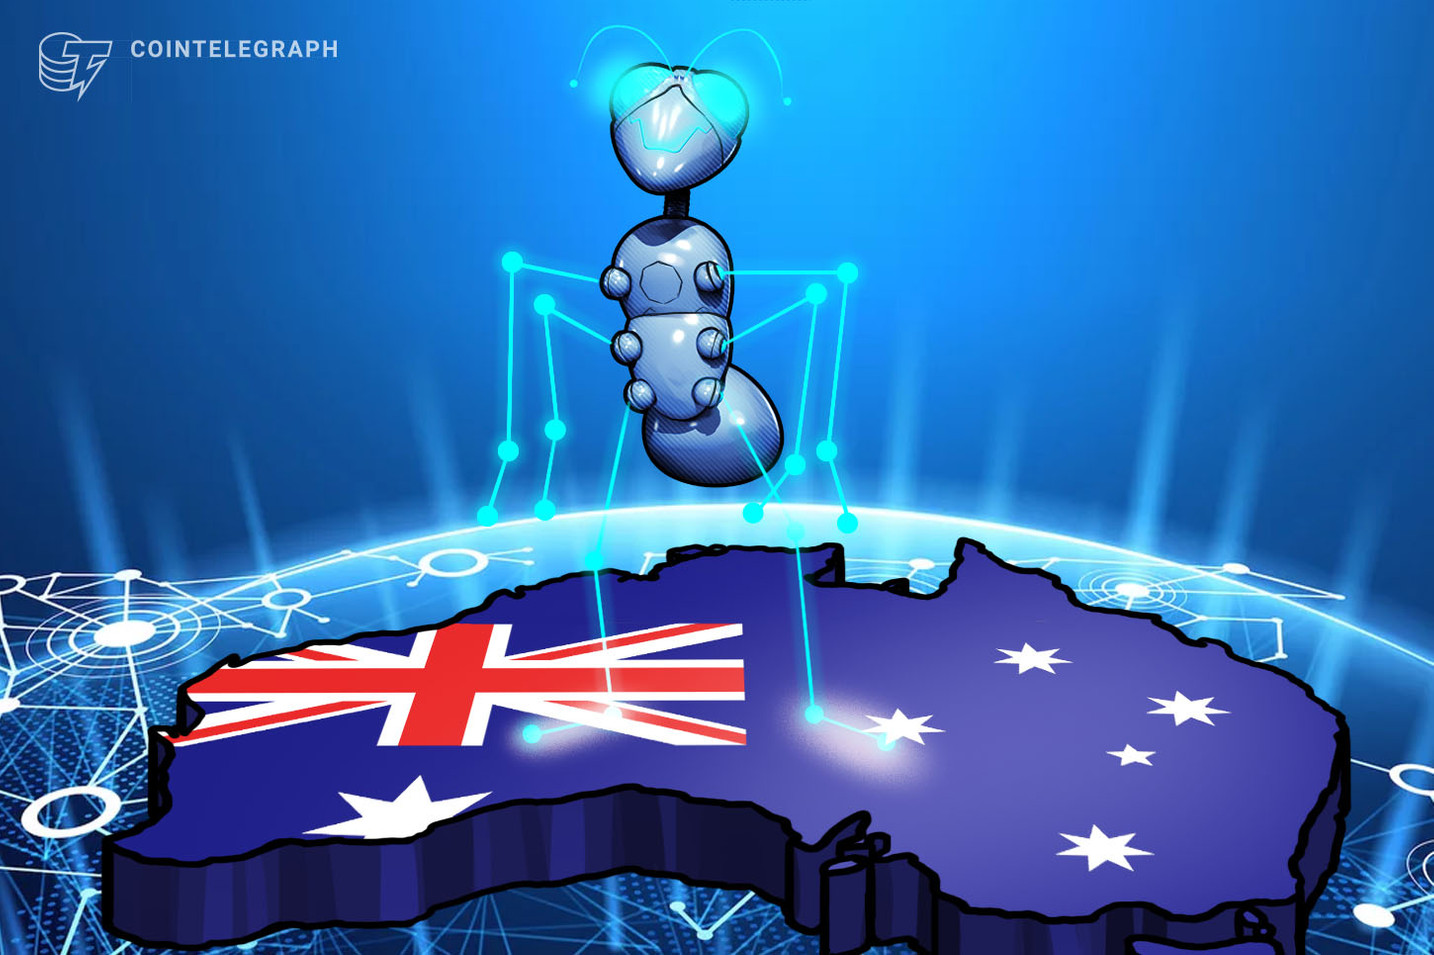 Australian Securities Exchange to triple capacity of DLT system